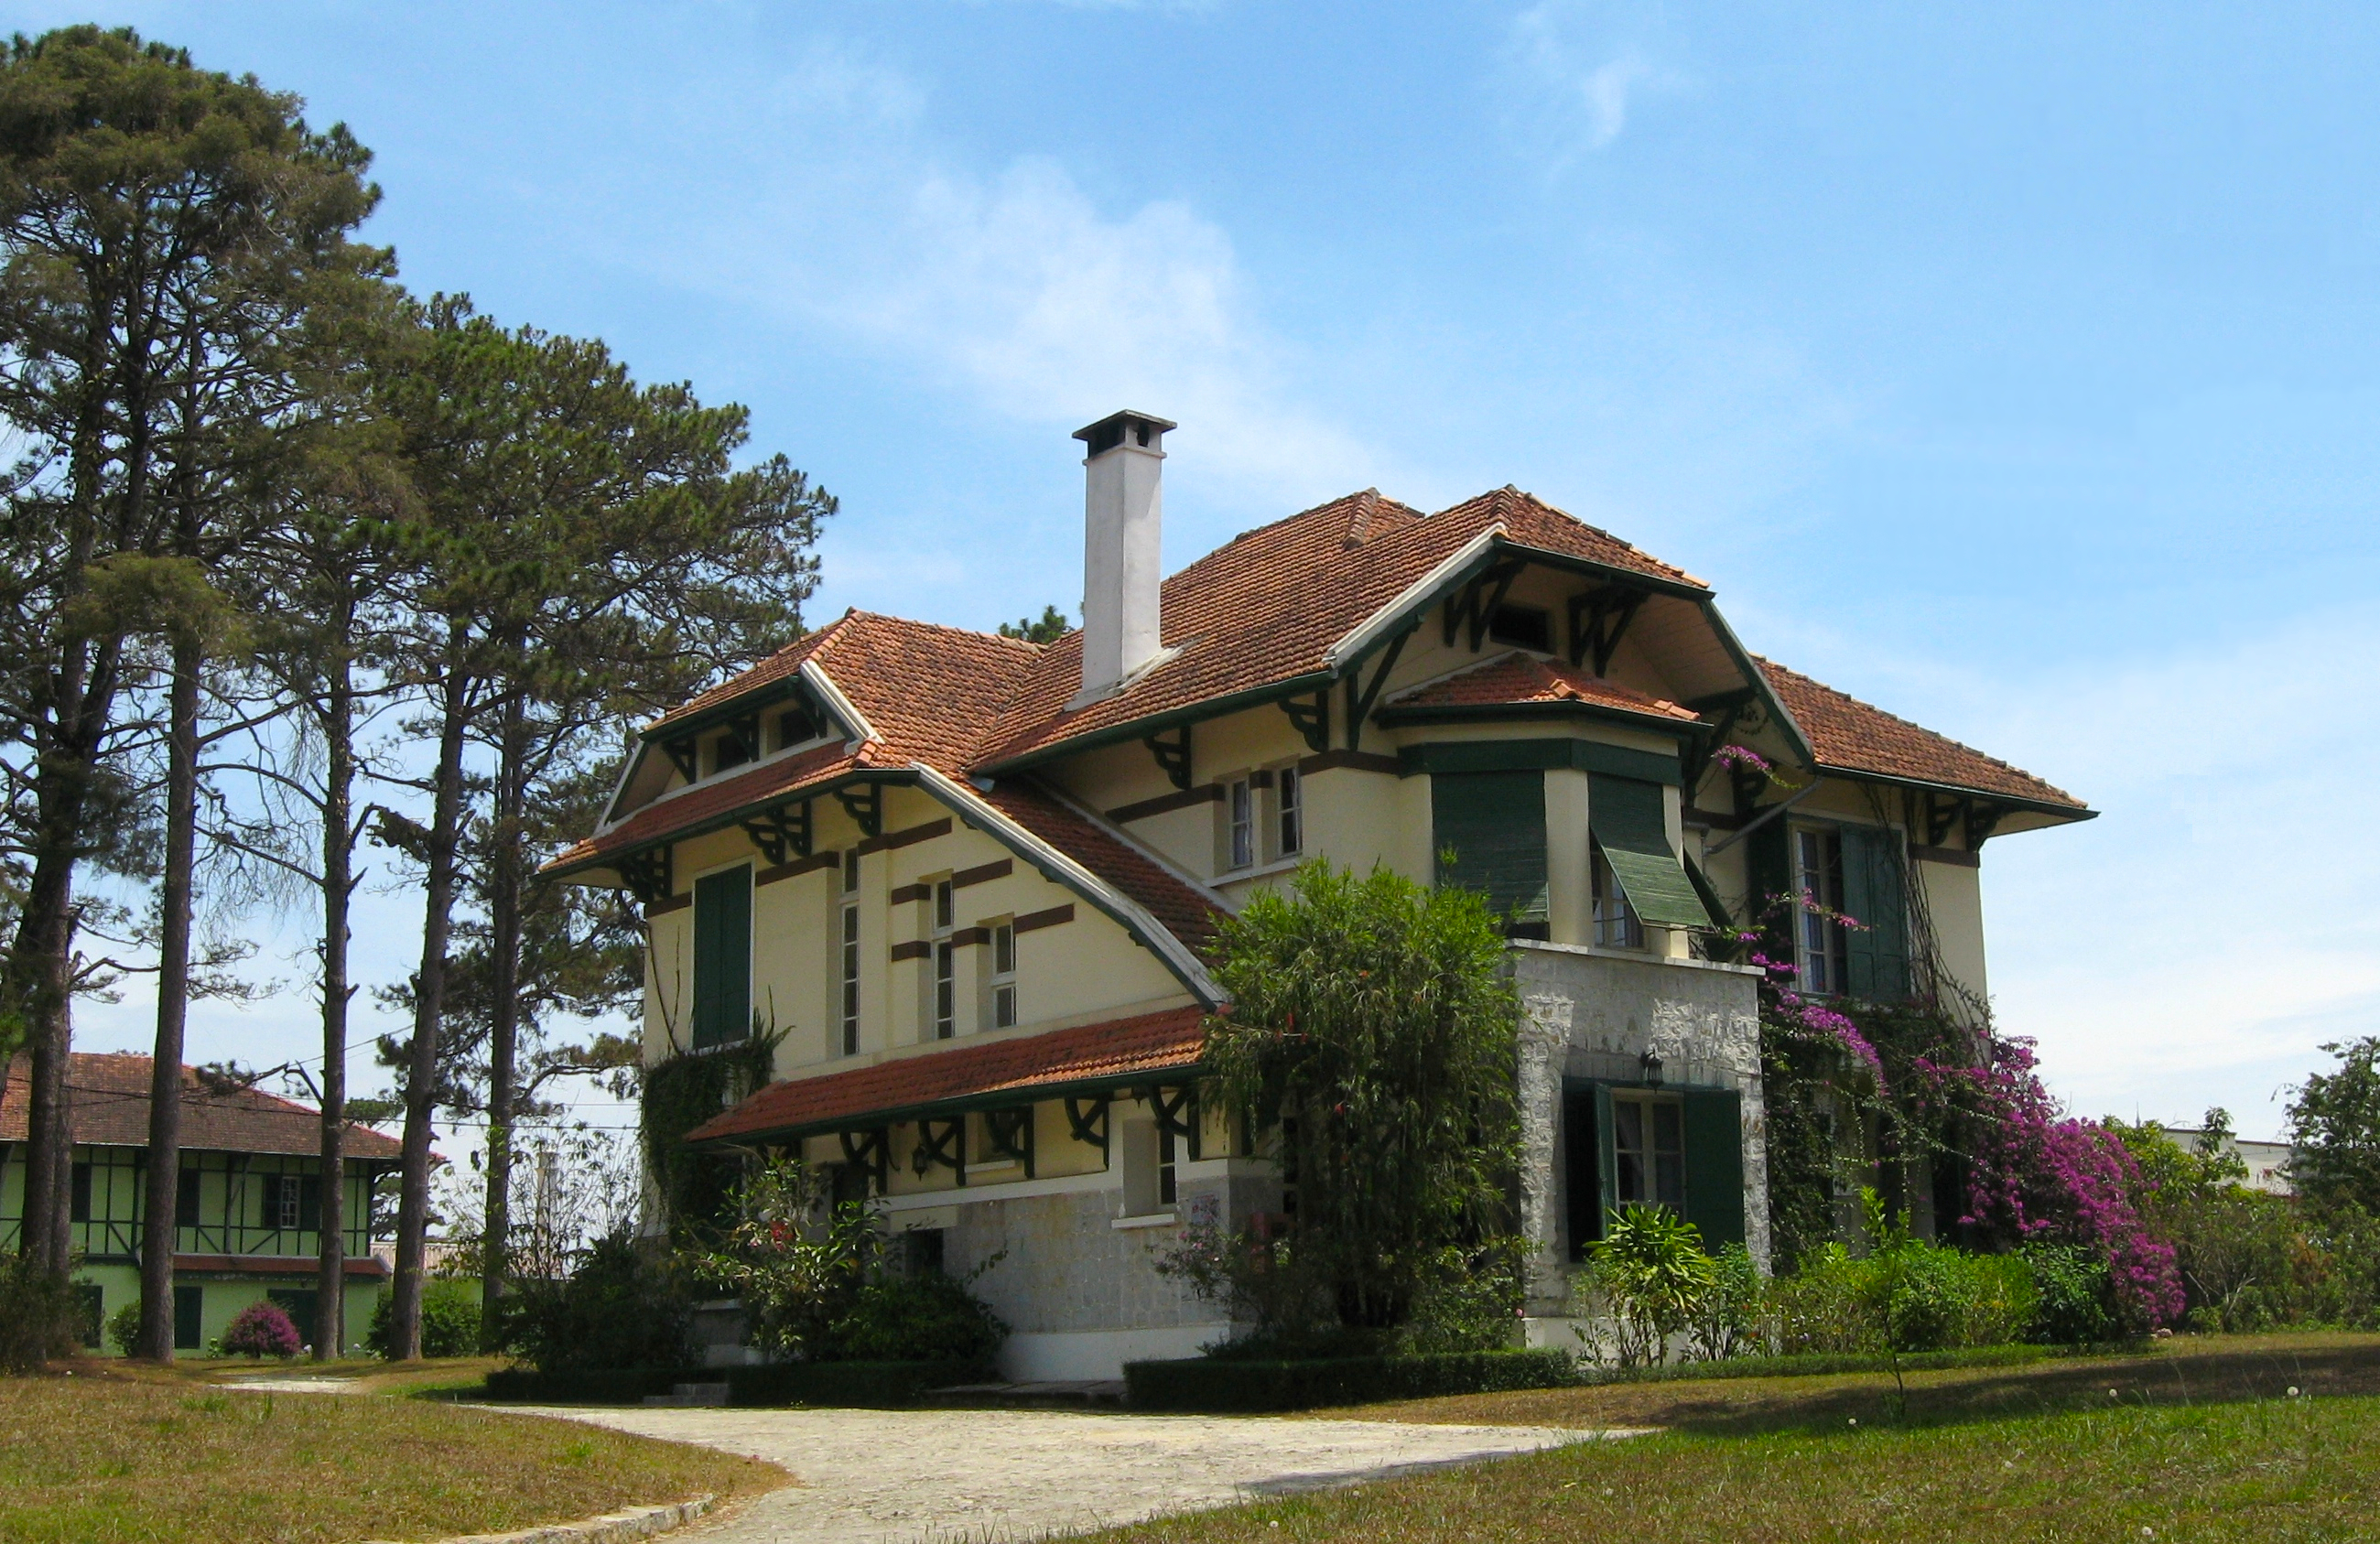 http://upload.wikimedia.org/wikipedia/commons/0/07/Villa_18_Tran_Hung_Dao,_Da_Lat_02.jpg